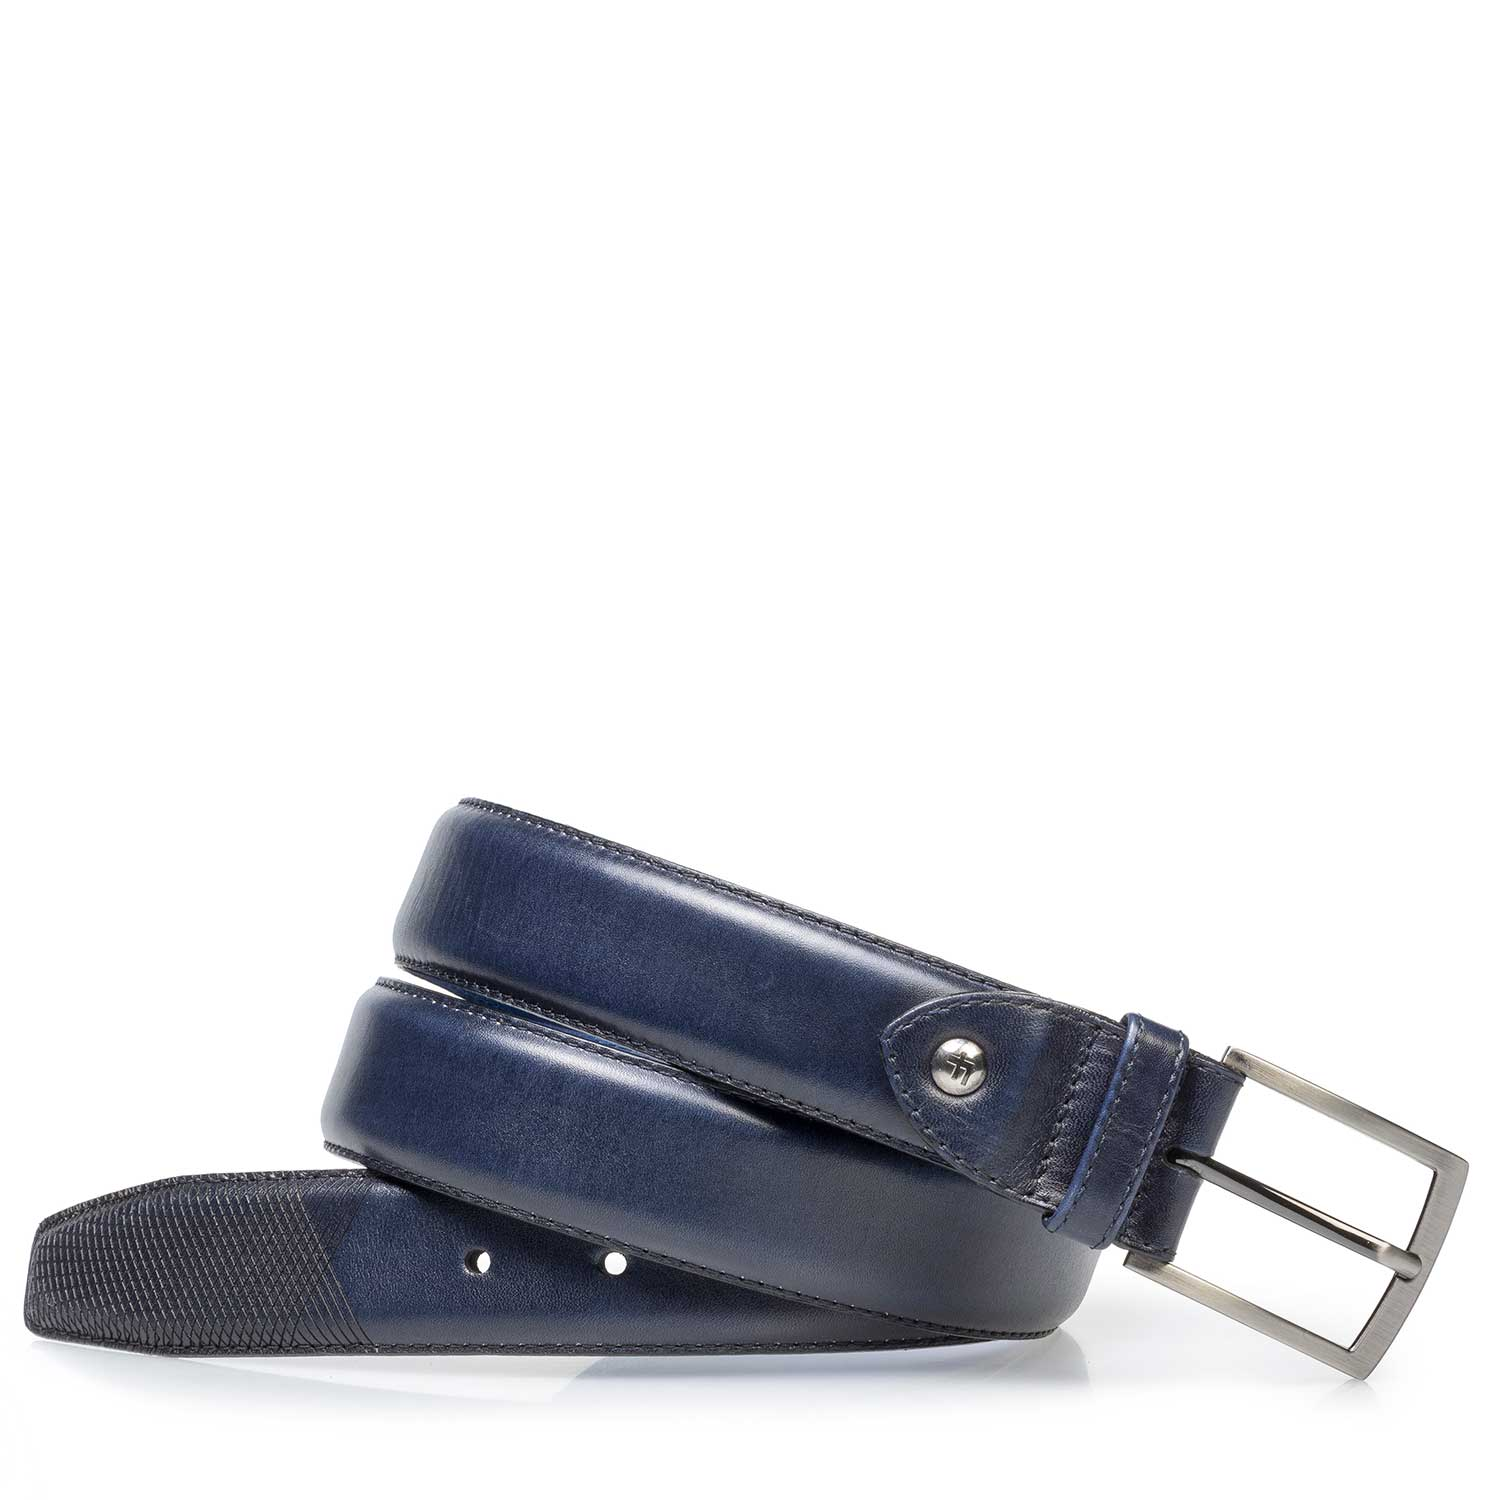 75211/02 - Dark blue calf leather belt